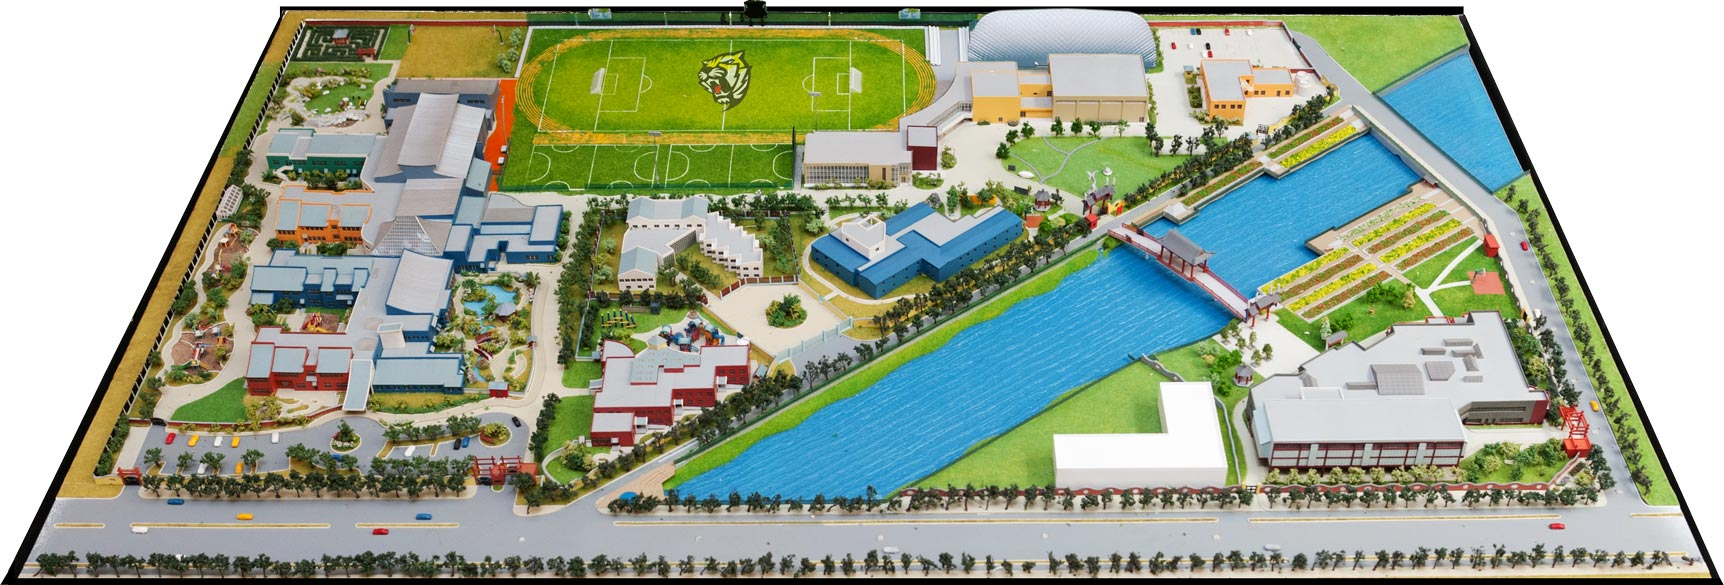 School Campus Map.Our Campus Leading Private School In Beijing Wab